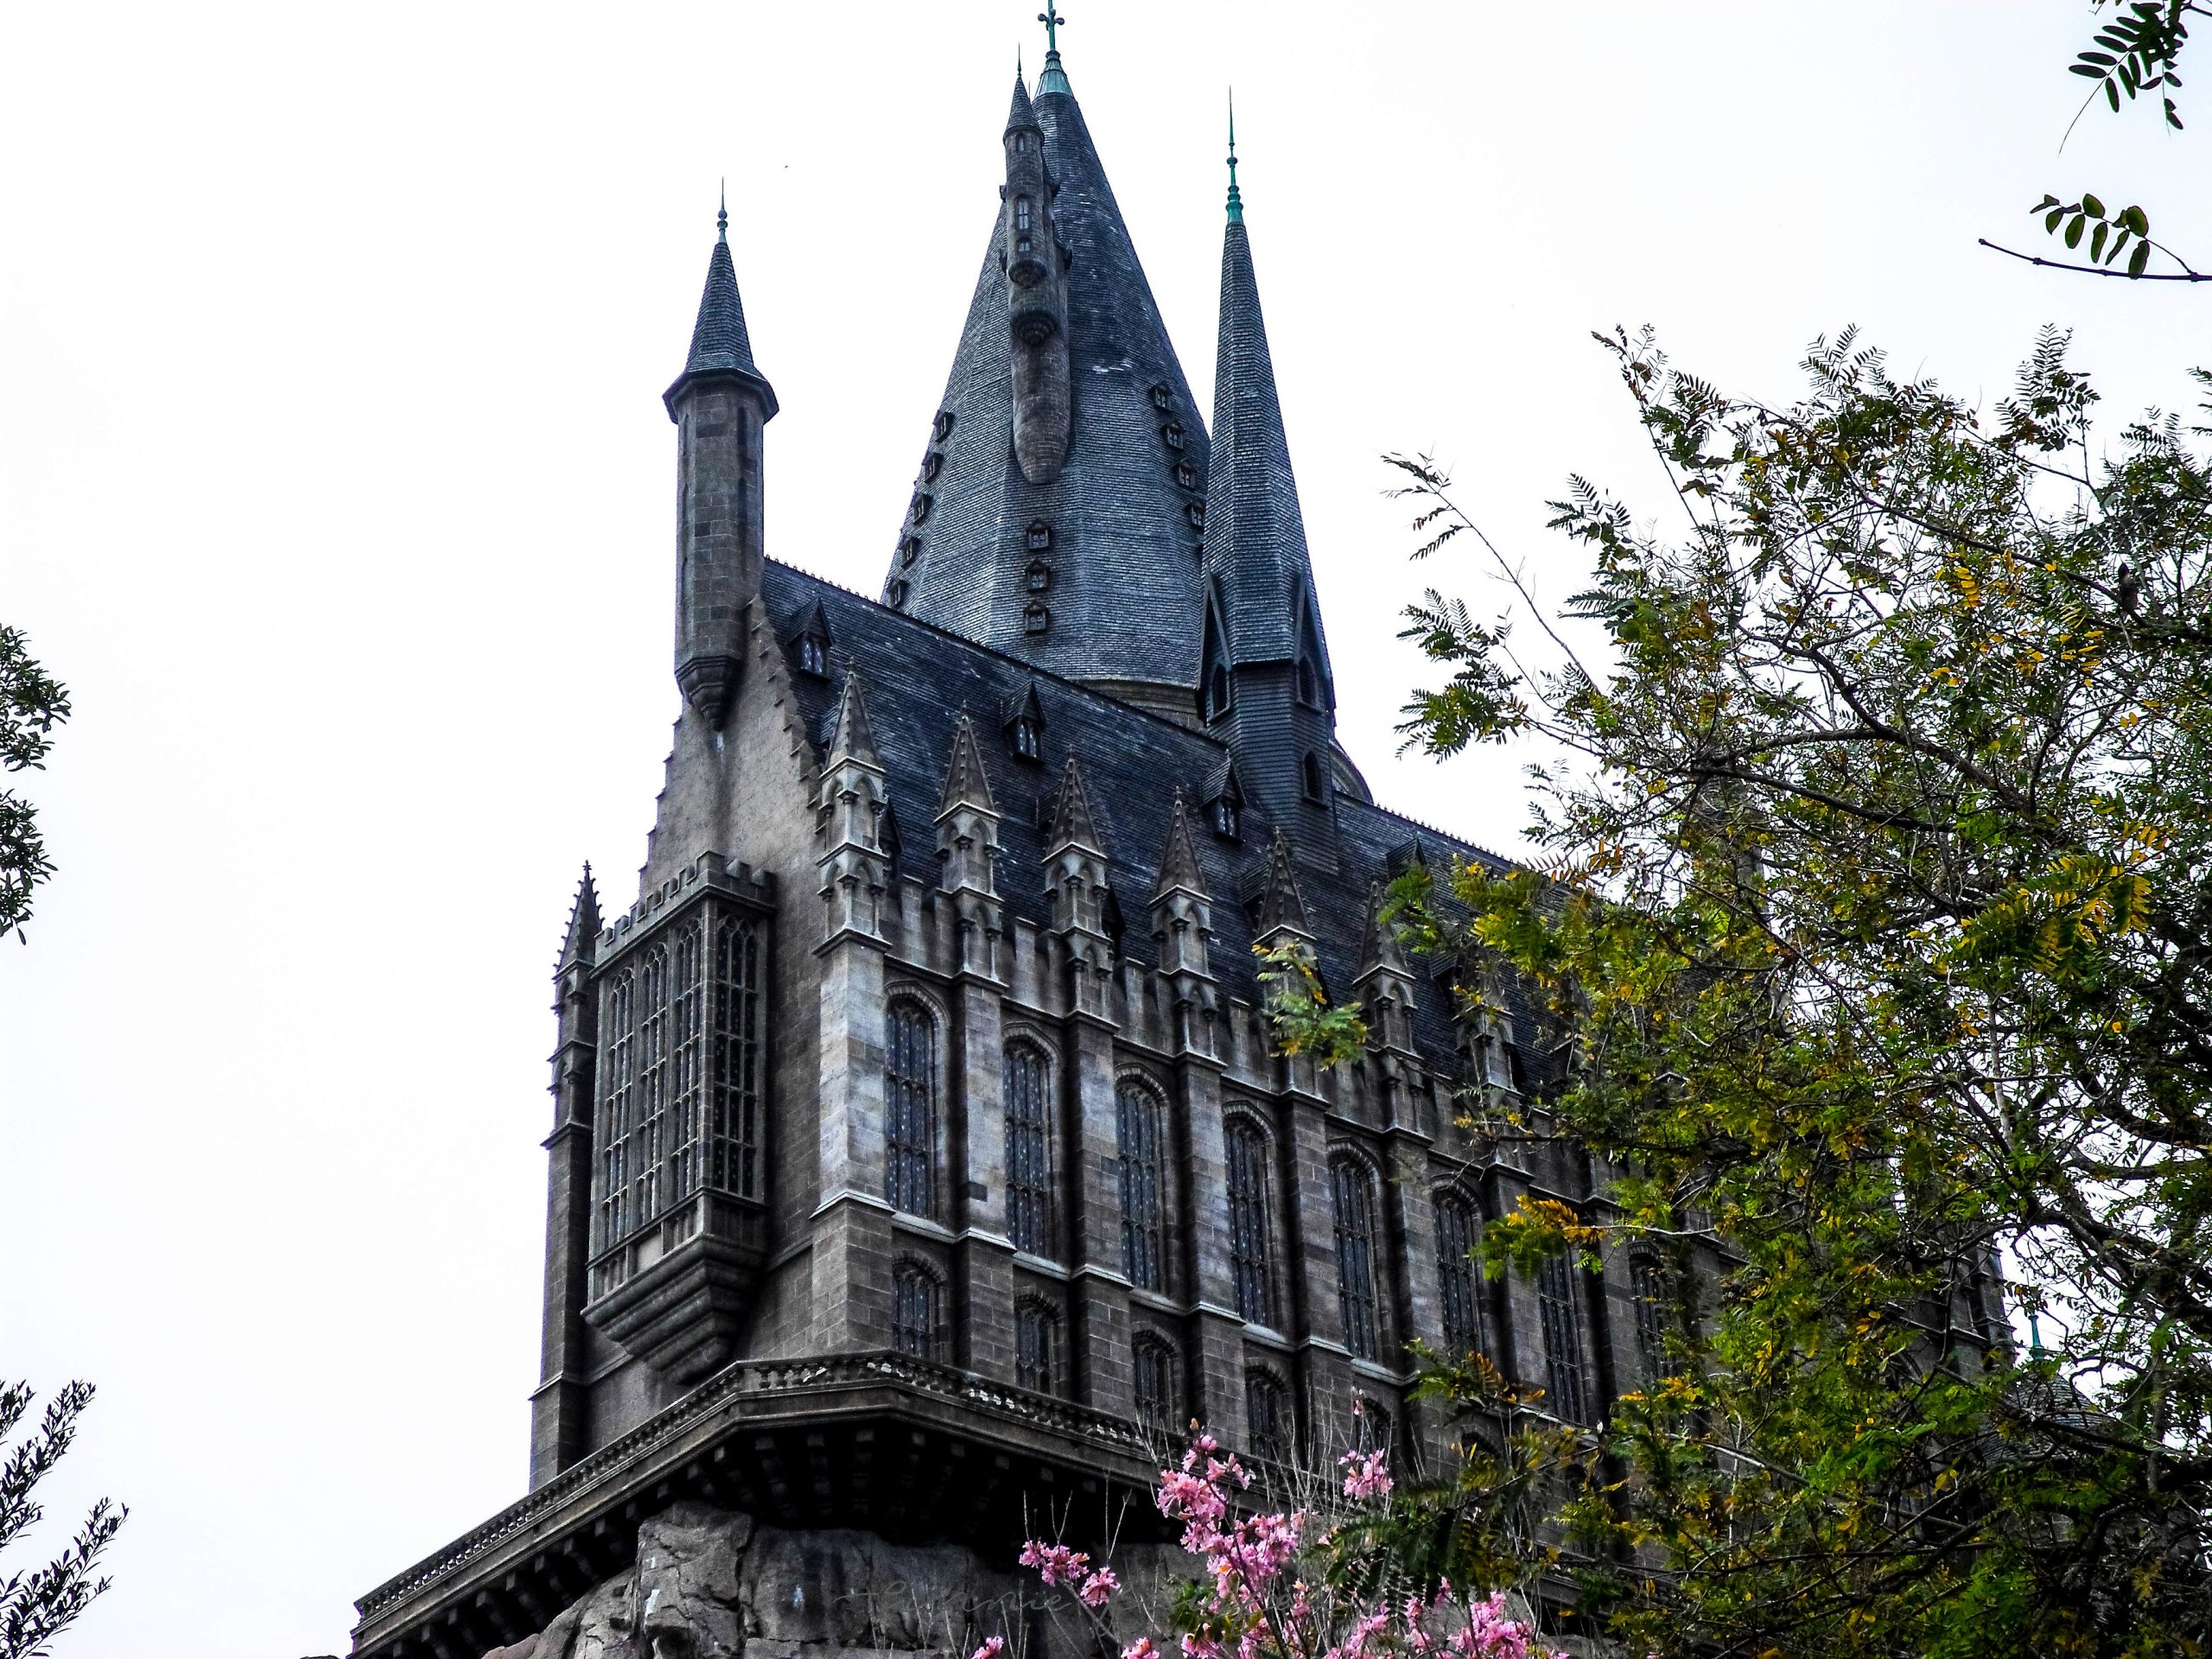 Universal Studios Wizarding World of Harry Potter in Orlando, Florida Luxury Travel Guide by Annie Fairfax